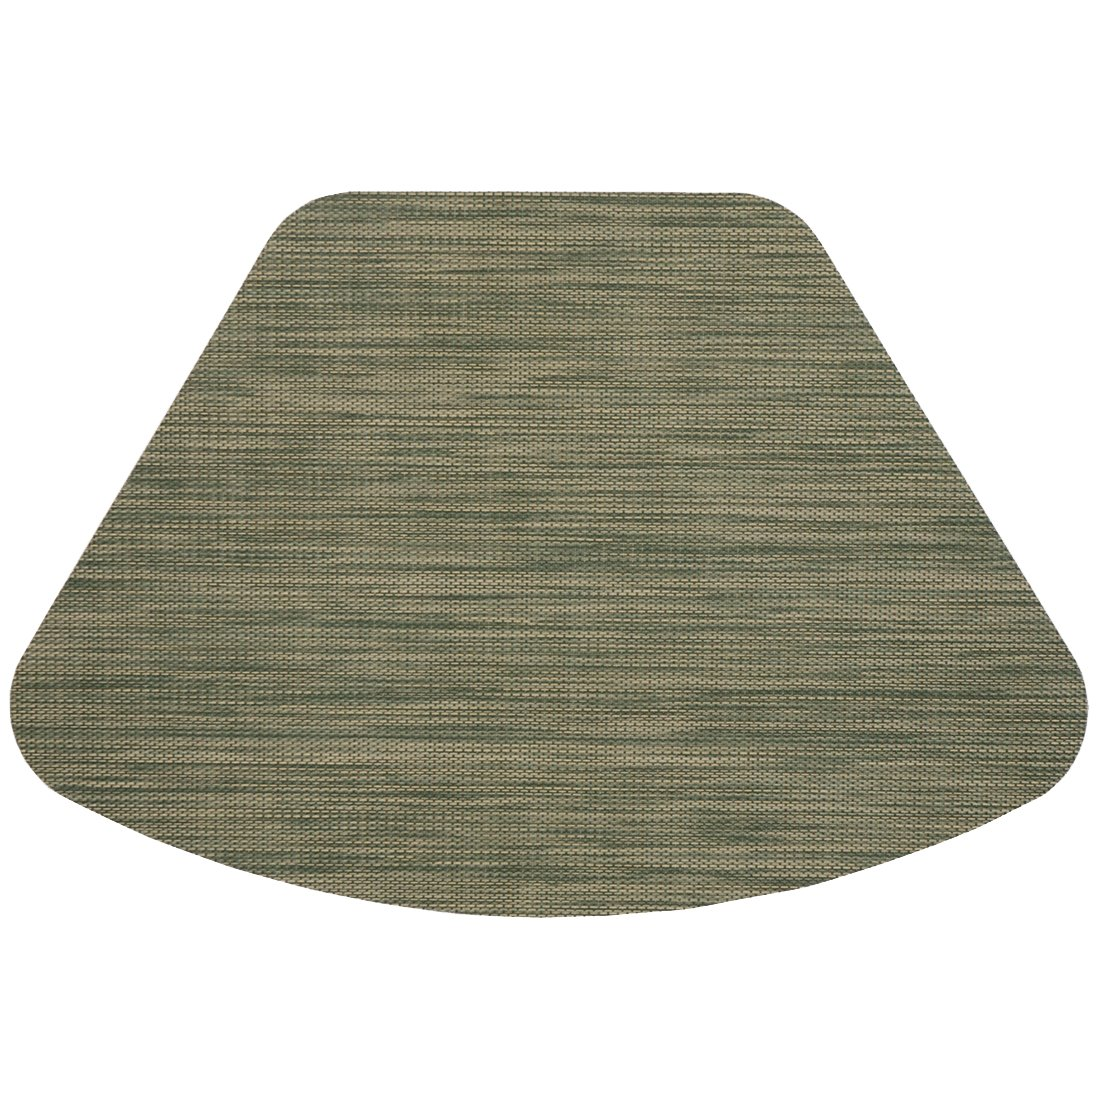 Tan Wipe Clean Wedgeshaped Placemats For Round  Tables: Home & Kitchen